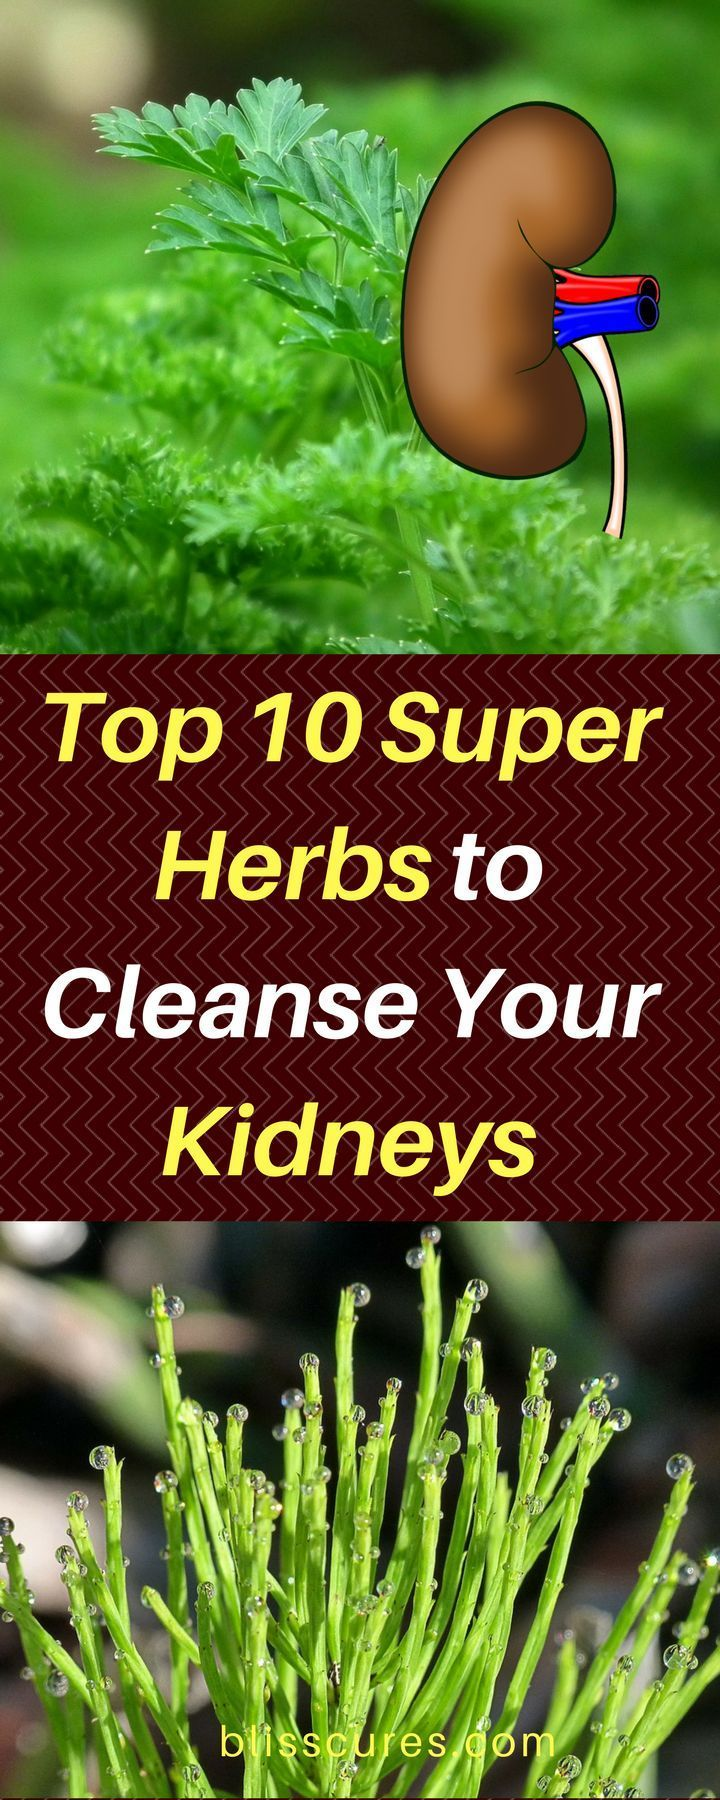 Top 10 Super Herbs to Cleanse Your Kidneys - In this article, you will find 10 herbs to cleanse your kidney and how to make and try those herbs